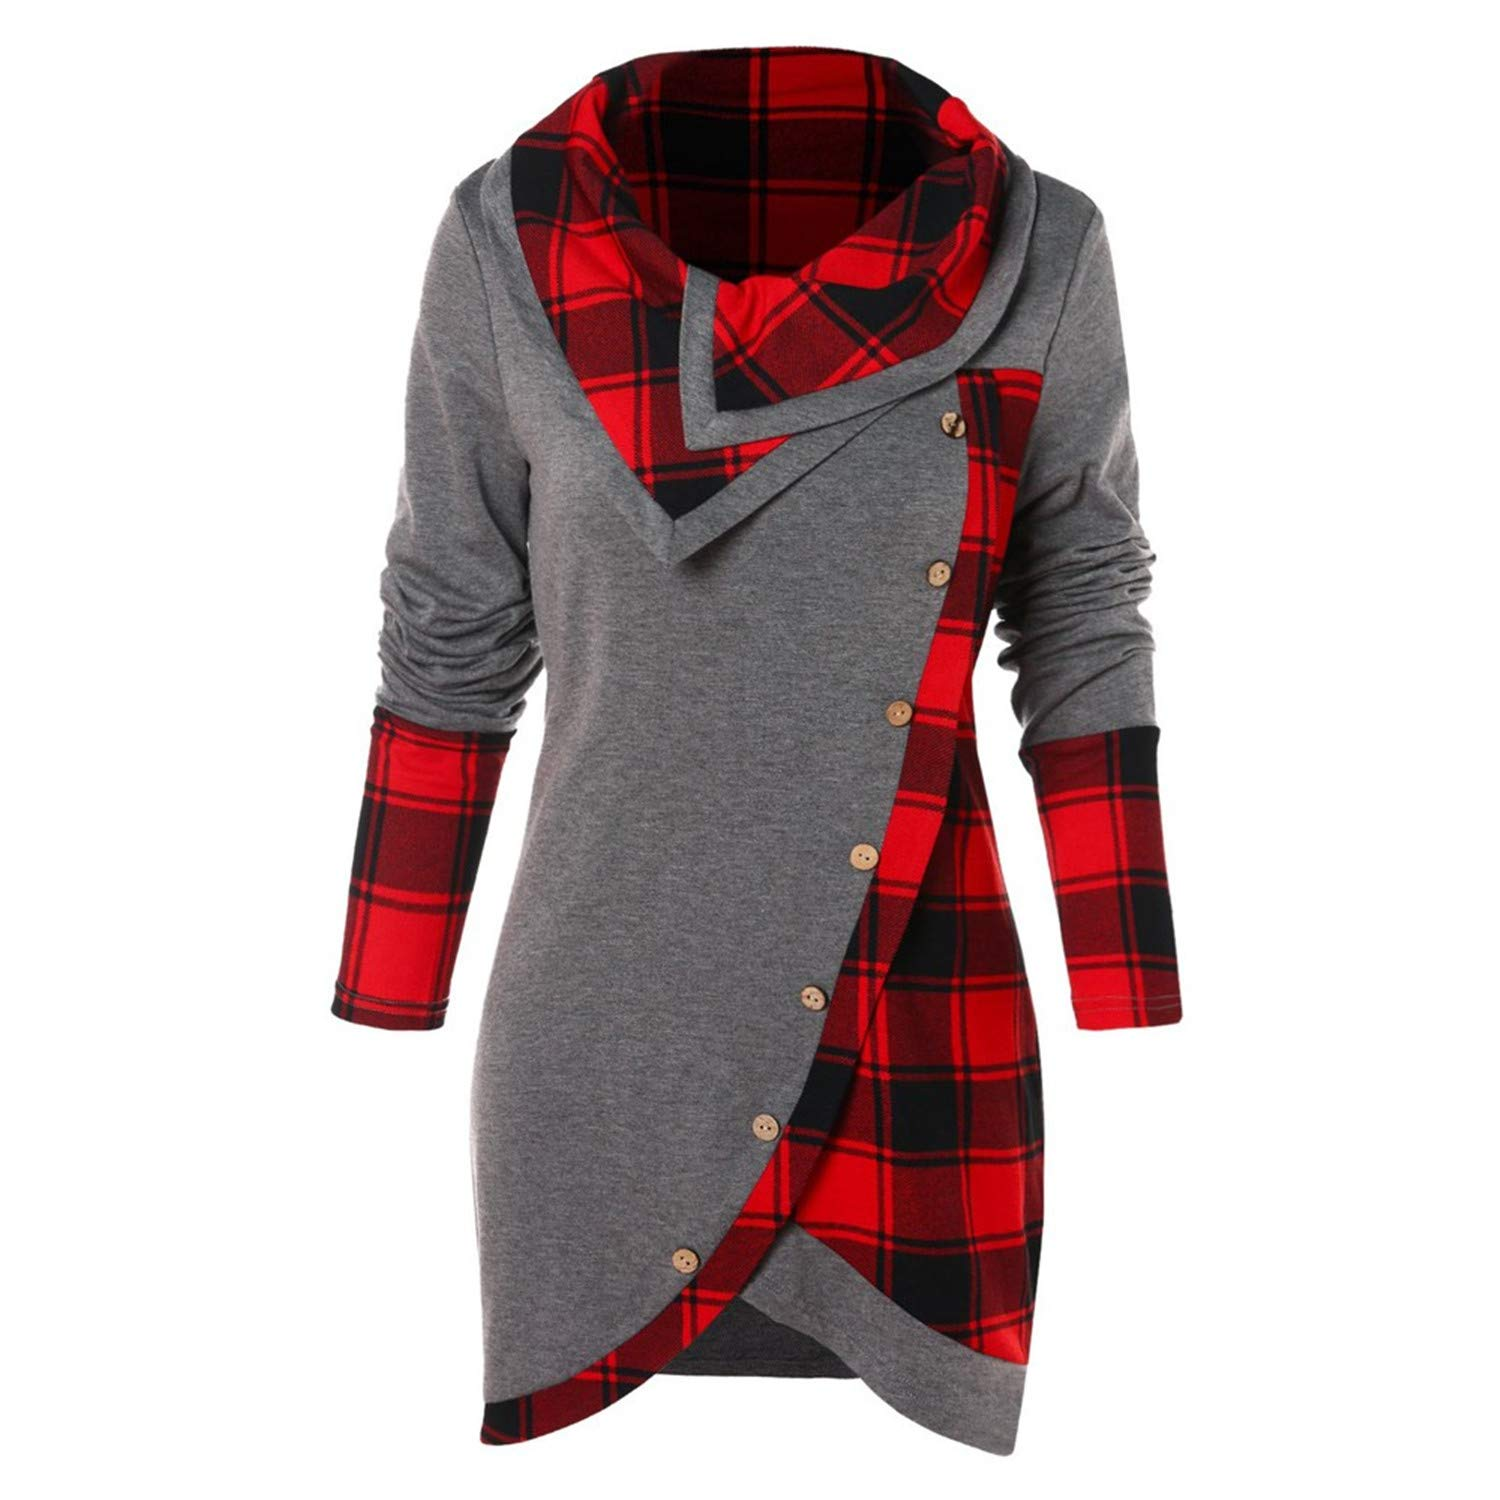 Sweatshirts Female Hoodie Women Long Sleeve Plaid Turtleneck Tartan Tunic Sweatshirt Pullover Tops Autumn at Amazon Womens Clothing store: